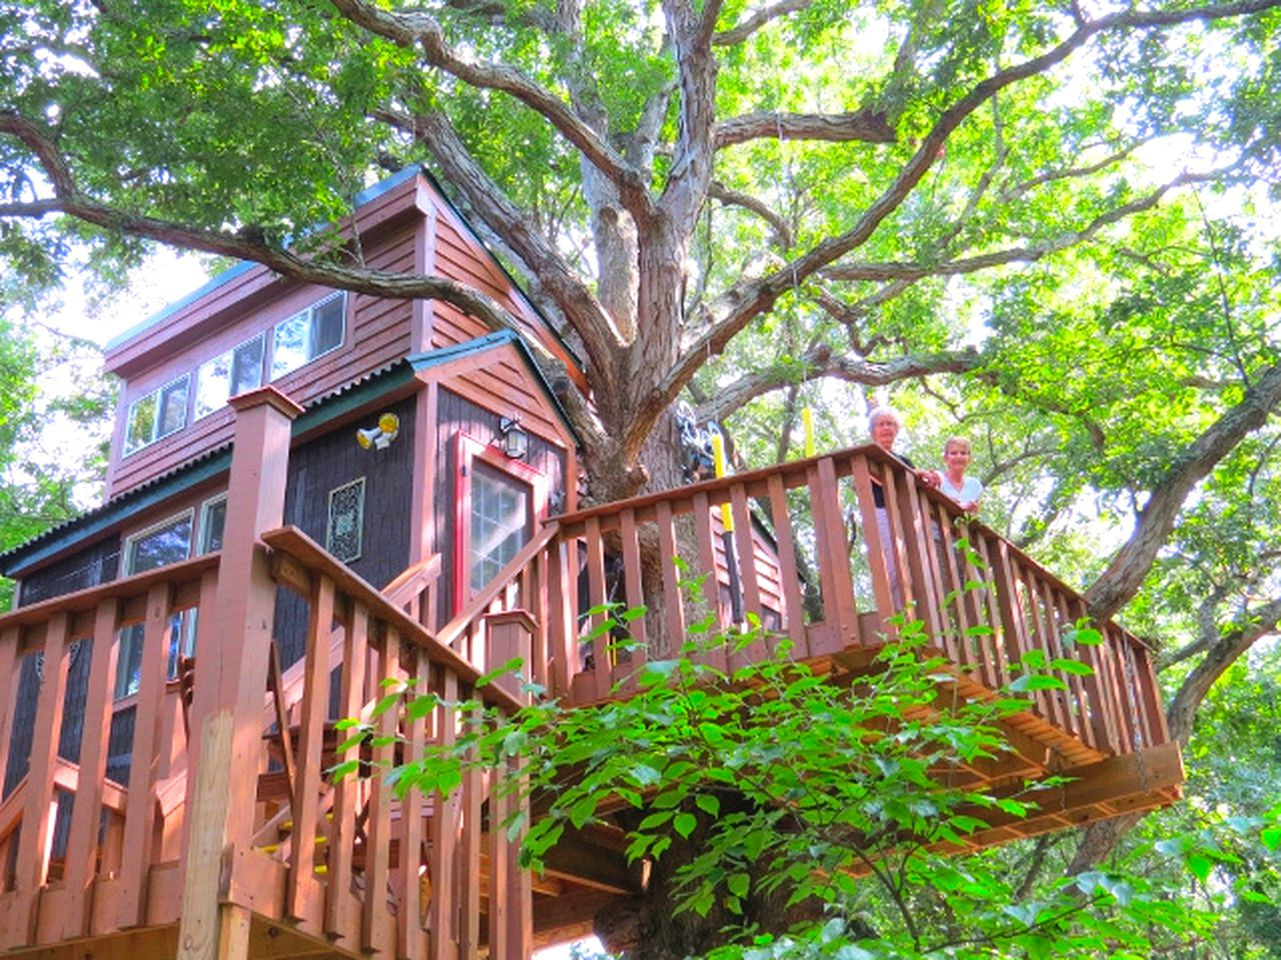 Exterior of the best tree house hotel Illinois has to offer